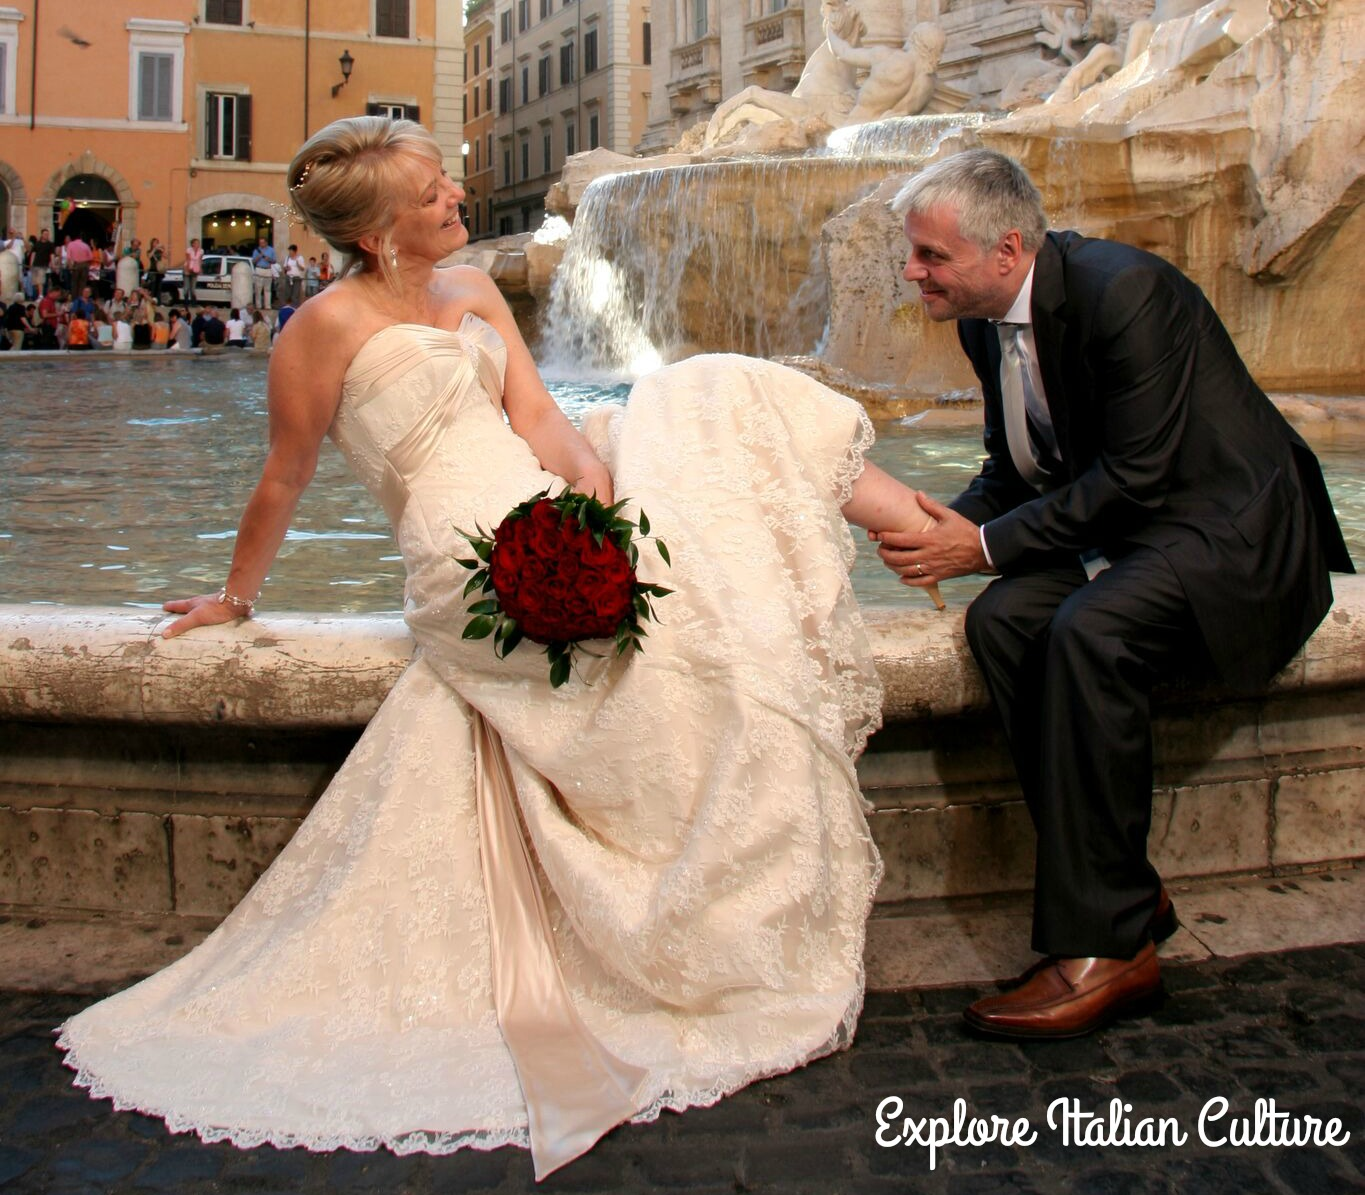 A wedding couple in Rome.